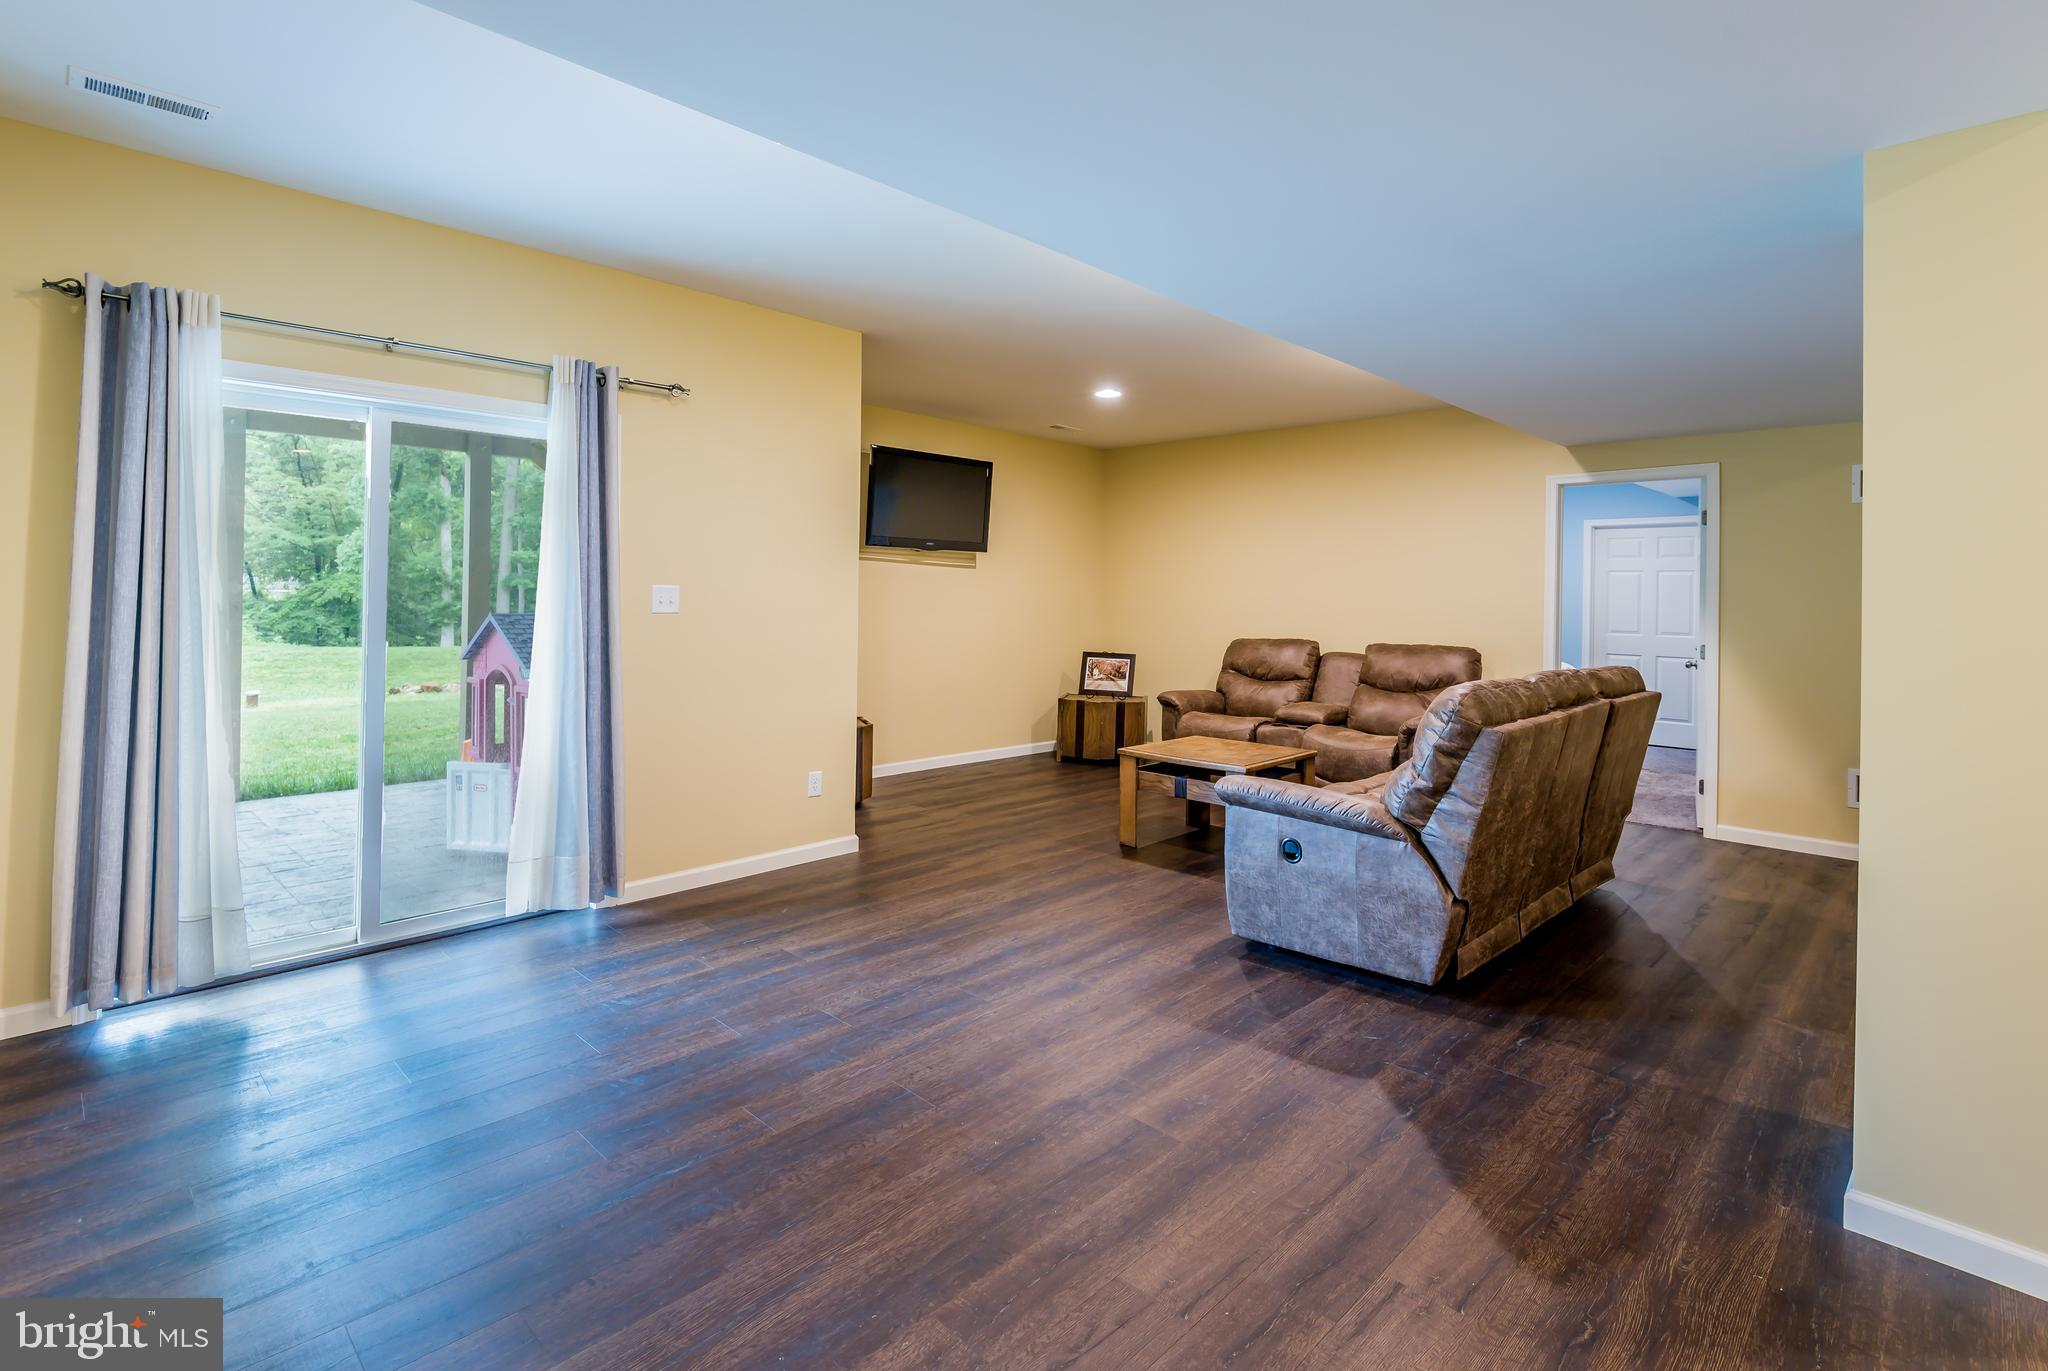 Lower Level Living Room with exterior patio access